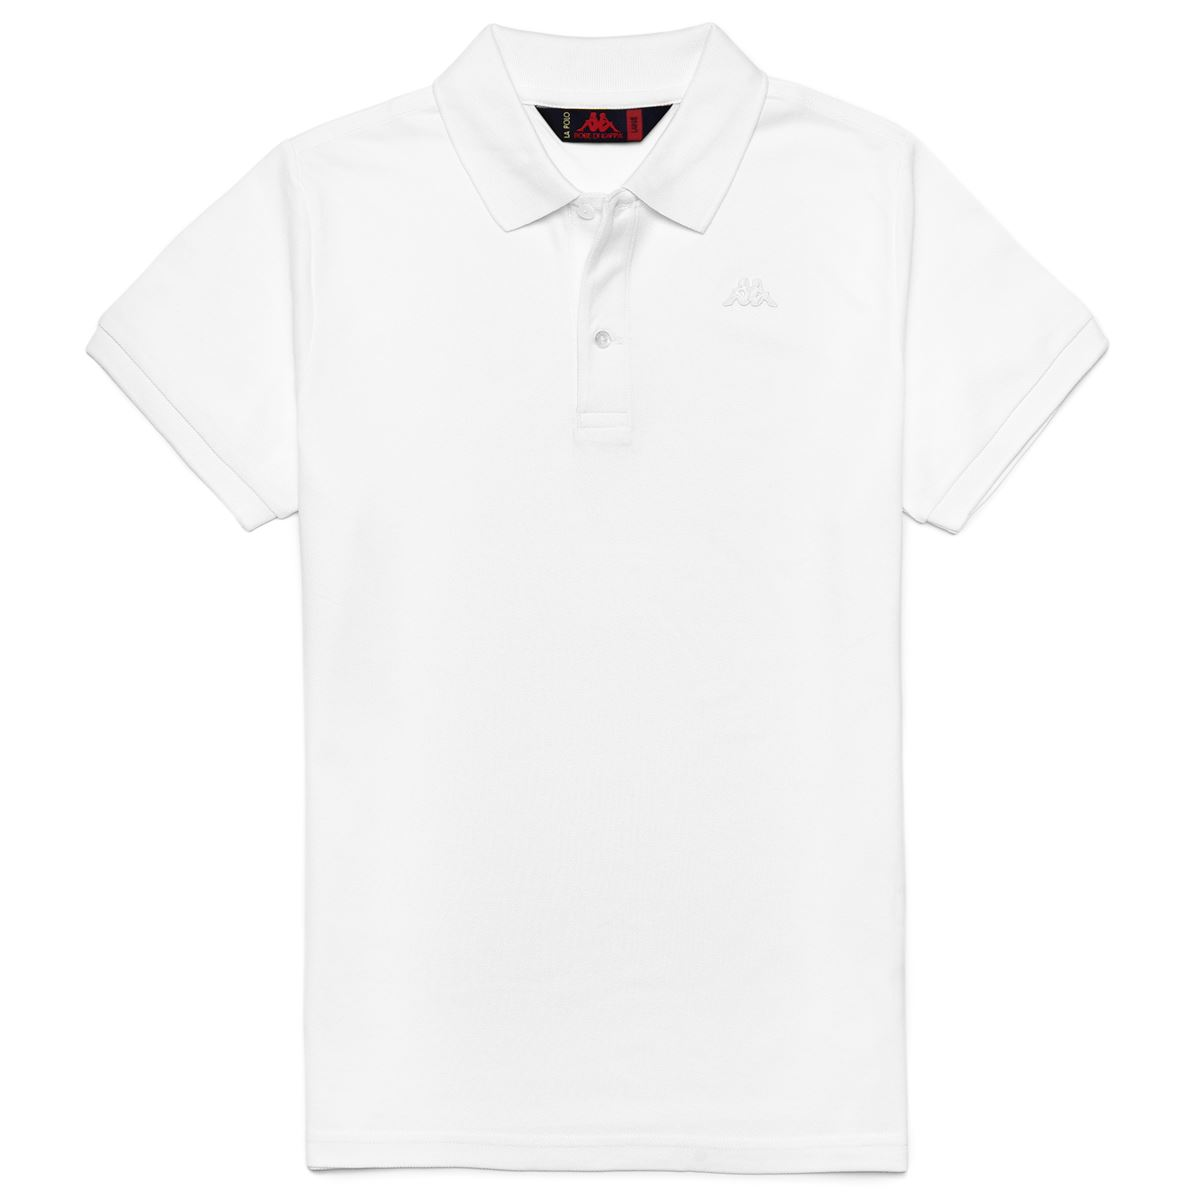 Robe di Kappa La polo Robe di Kappa WILLIAM Polo Uomo